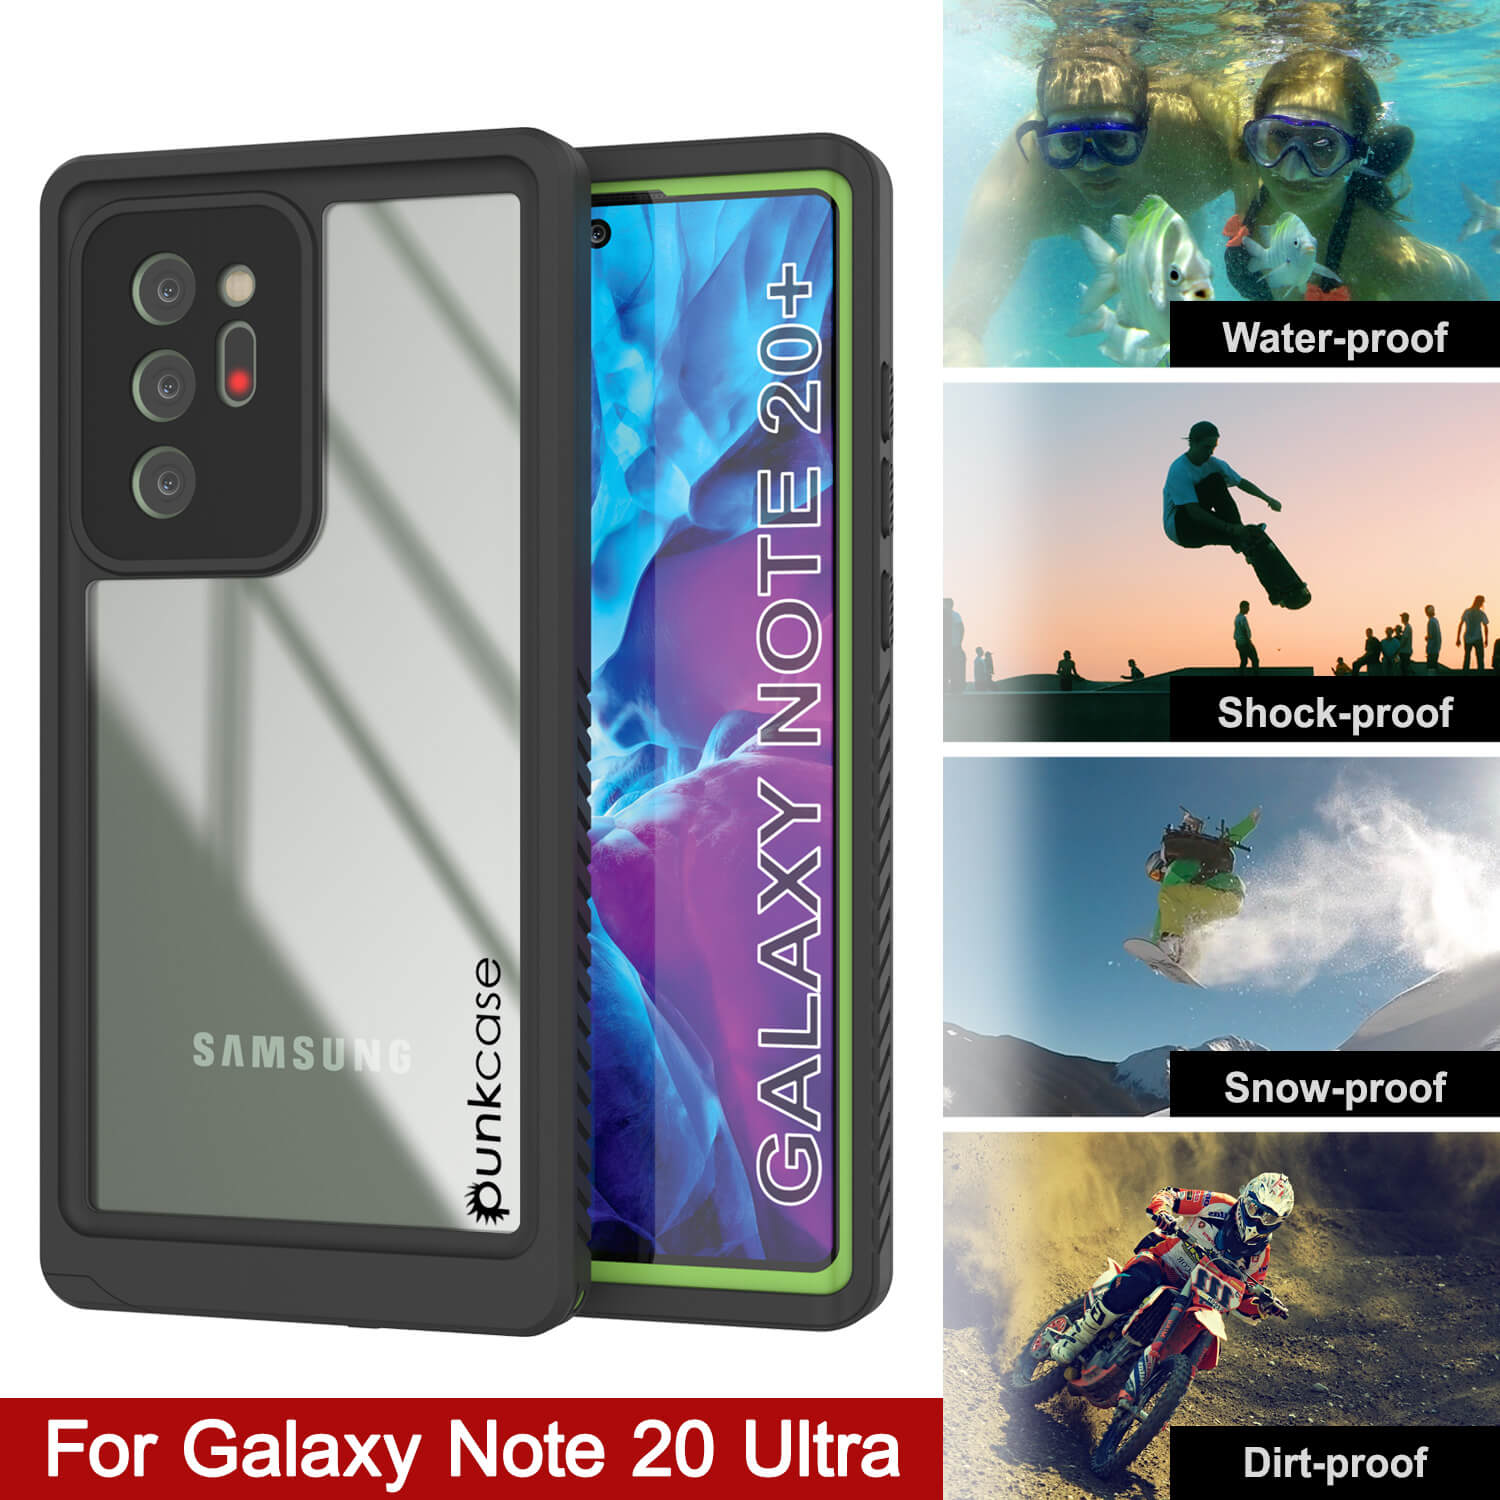 Galaxy Note 20 Ultra Case, Punkcase [Extreme Series] Armor Cover W/ Built In Screen Protector [Light Green]